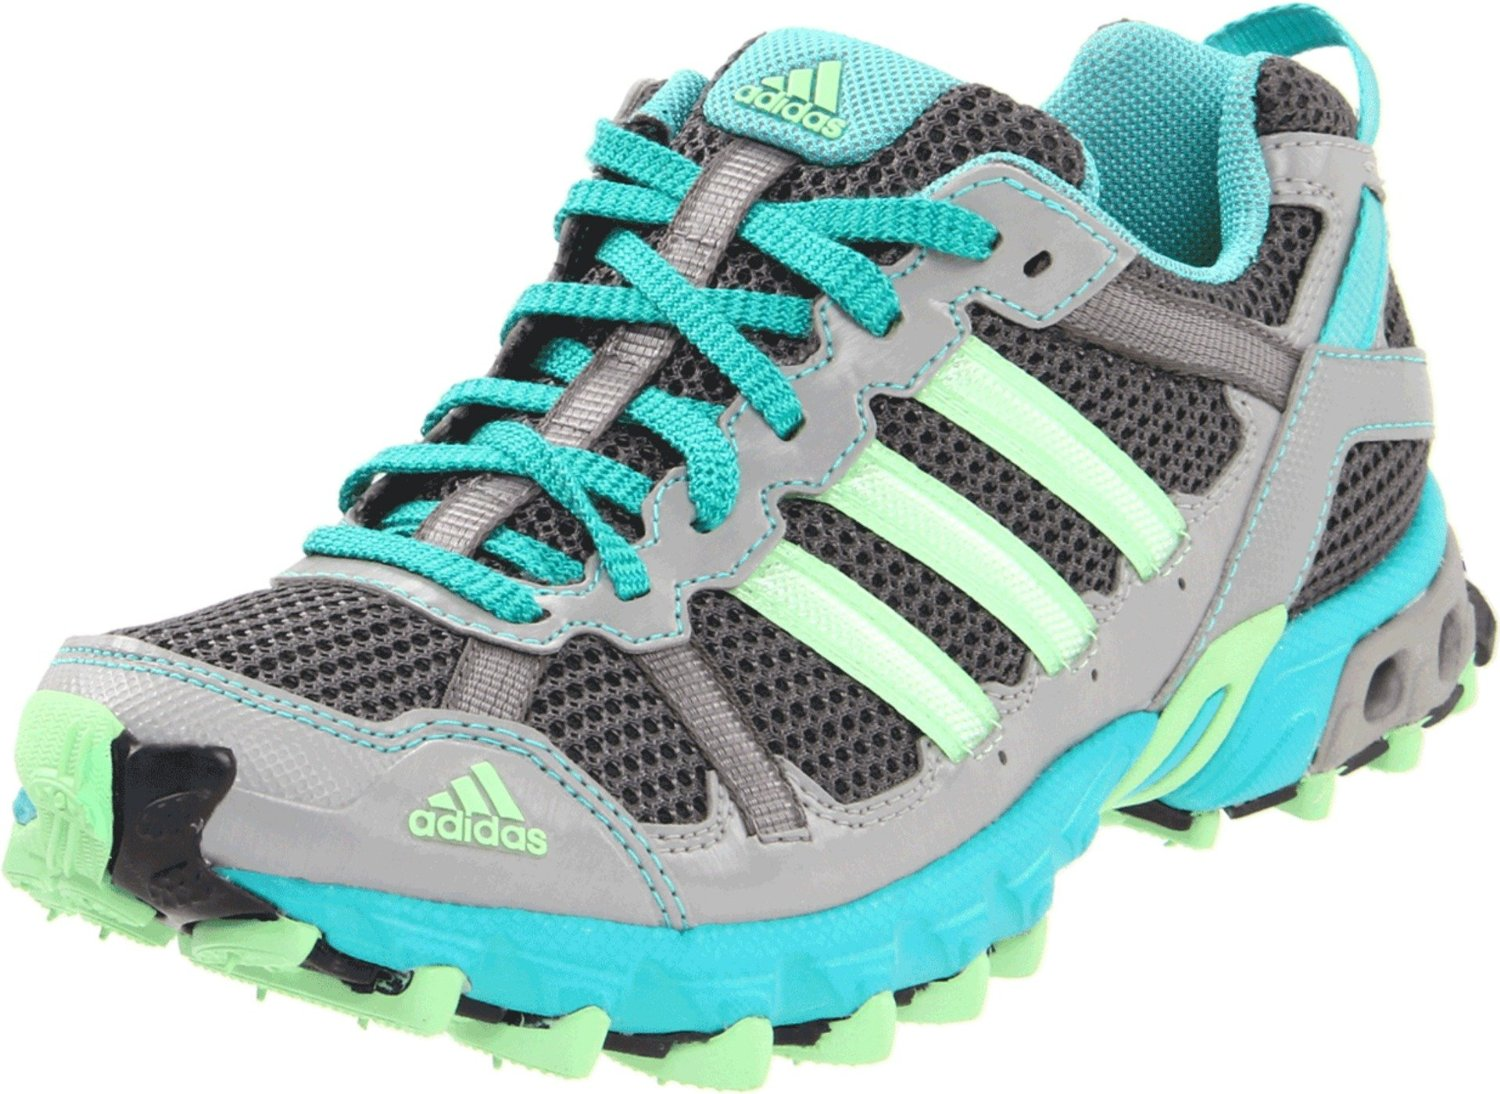 Innovative Adidas Womens Running Shoes Mandala2012.co.uk